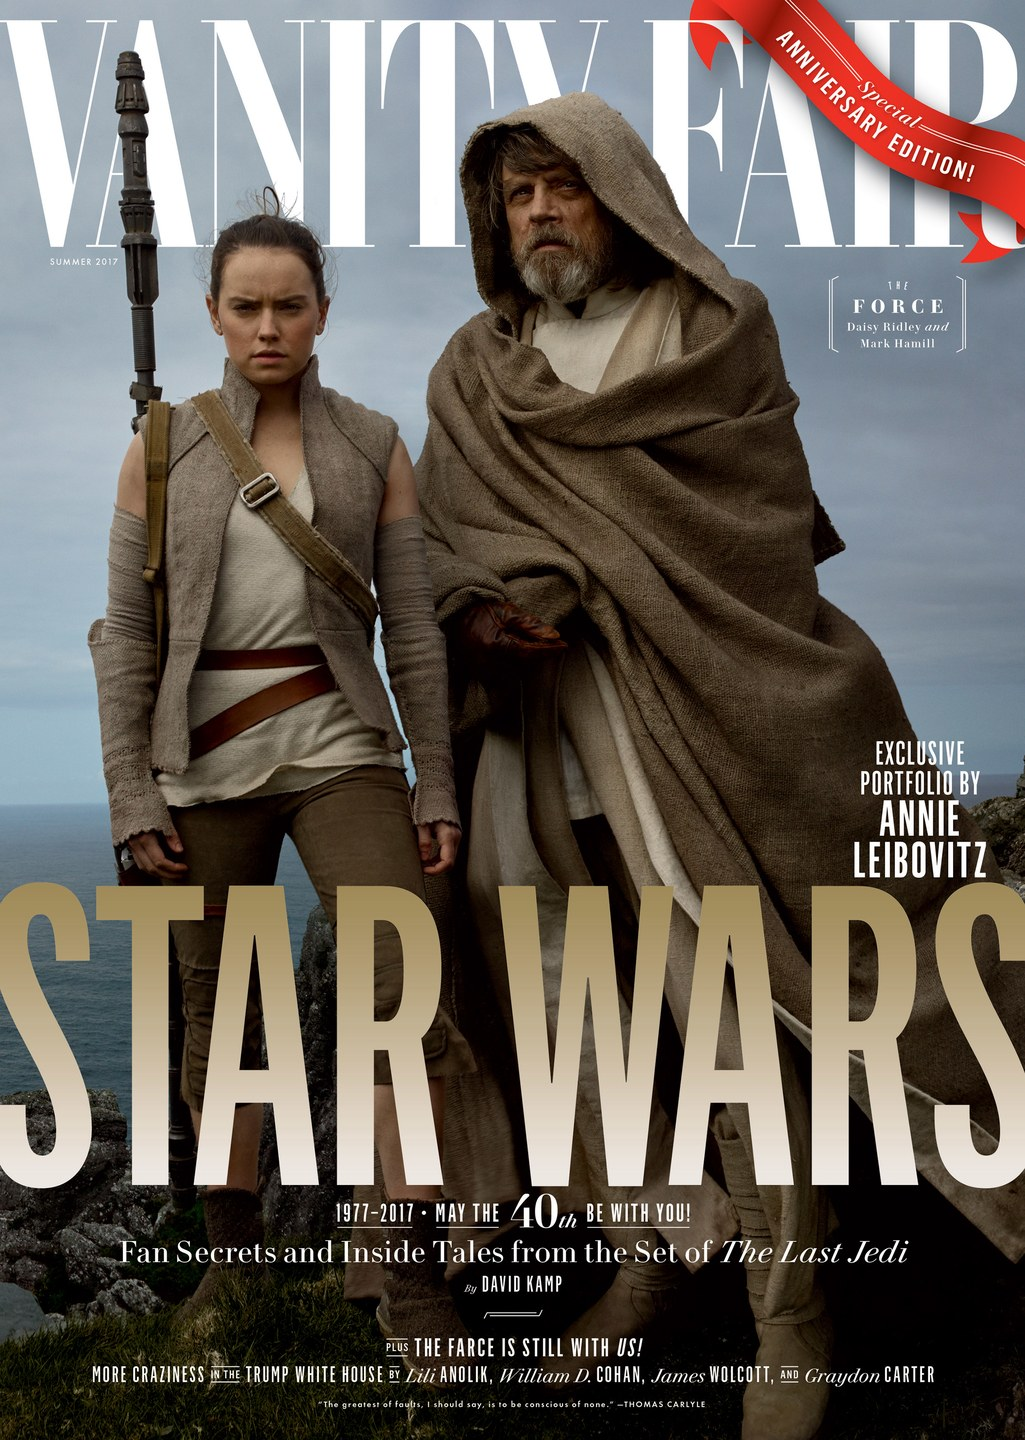 Vanity Fair No. 683 - The Force Cover